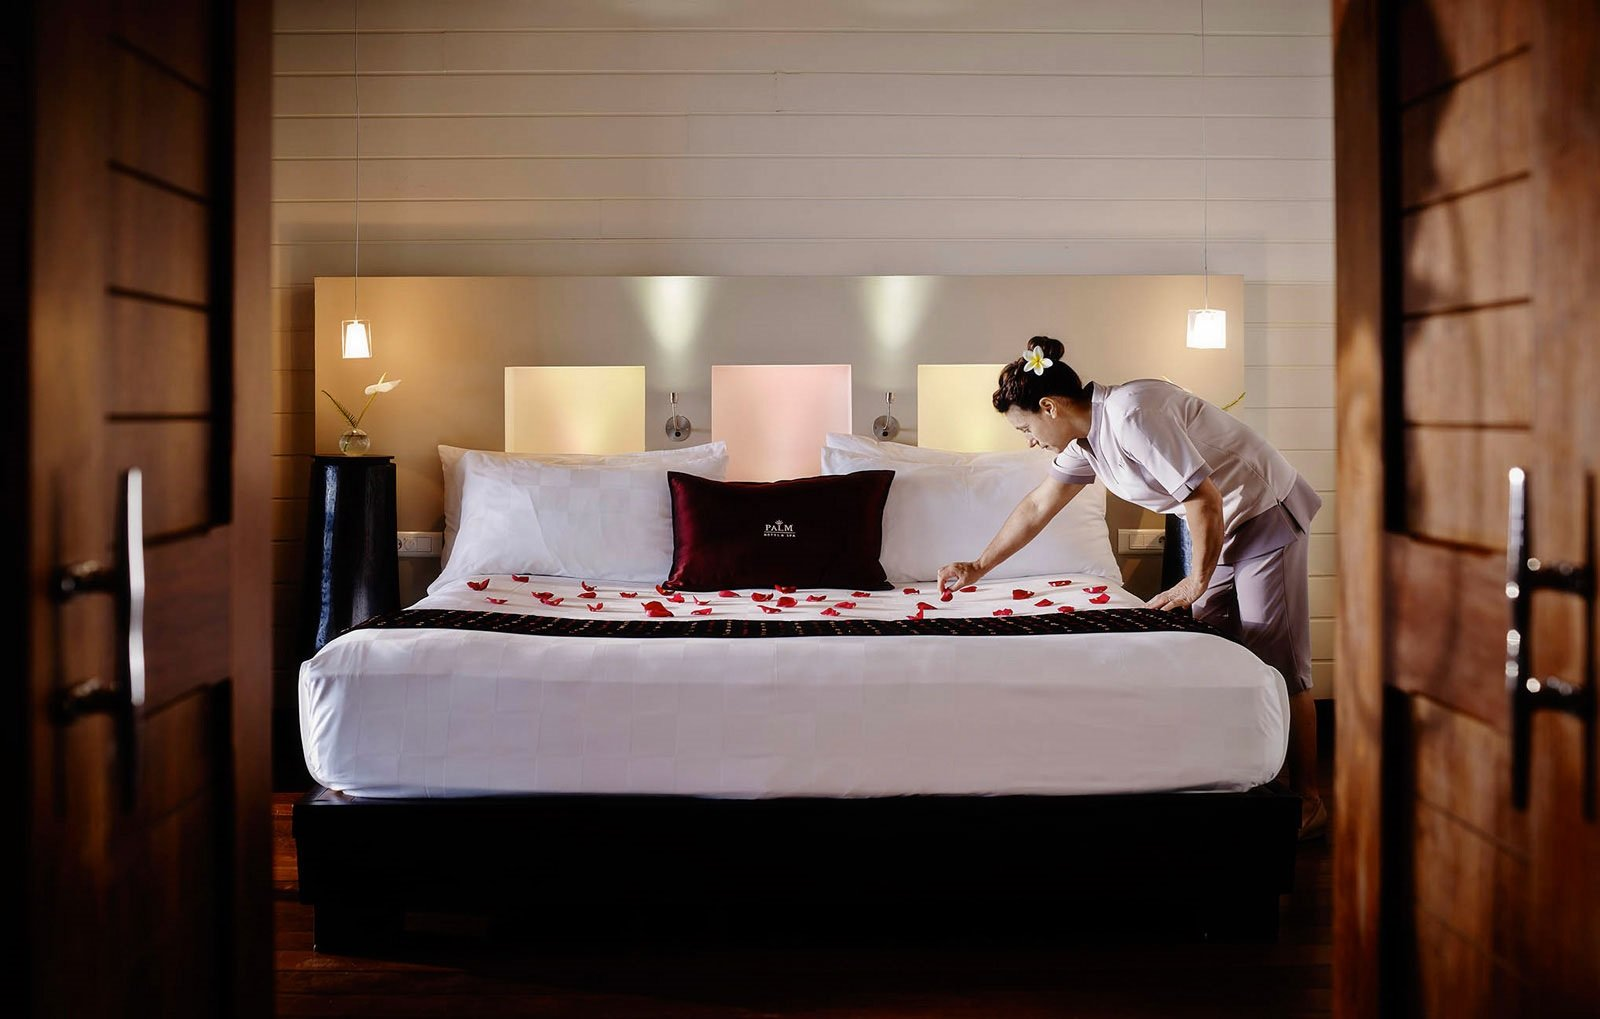 Hotel room with one bed and a house keeper placing rose petal